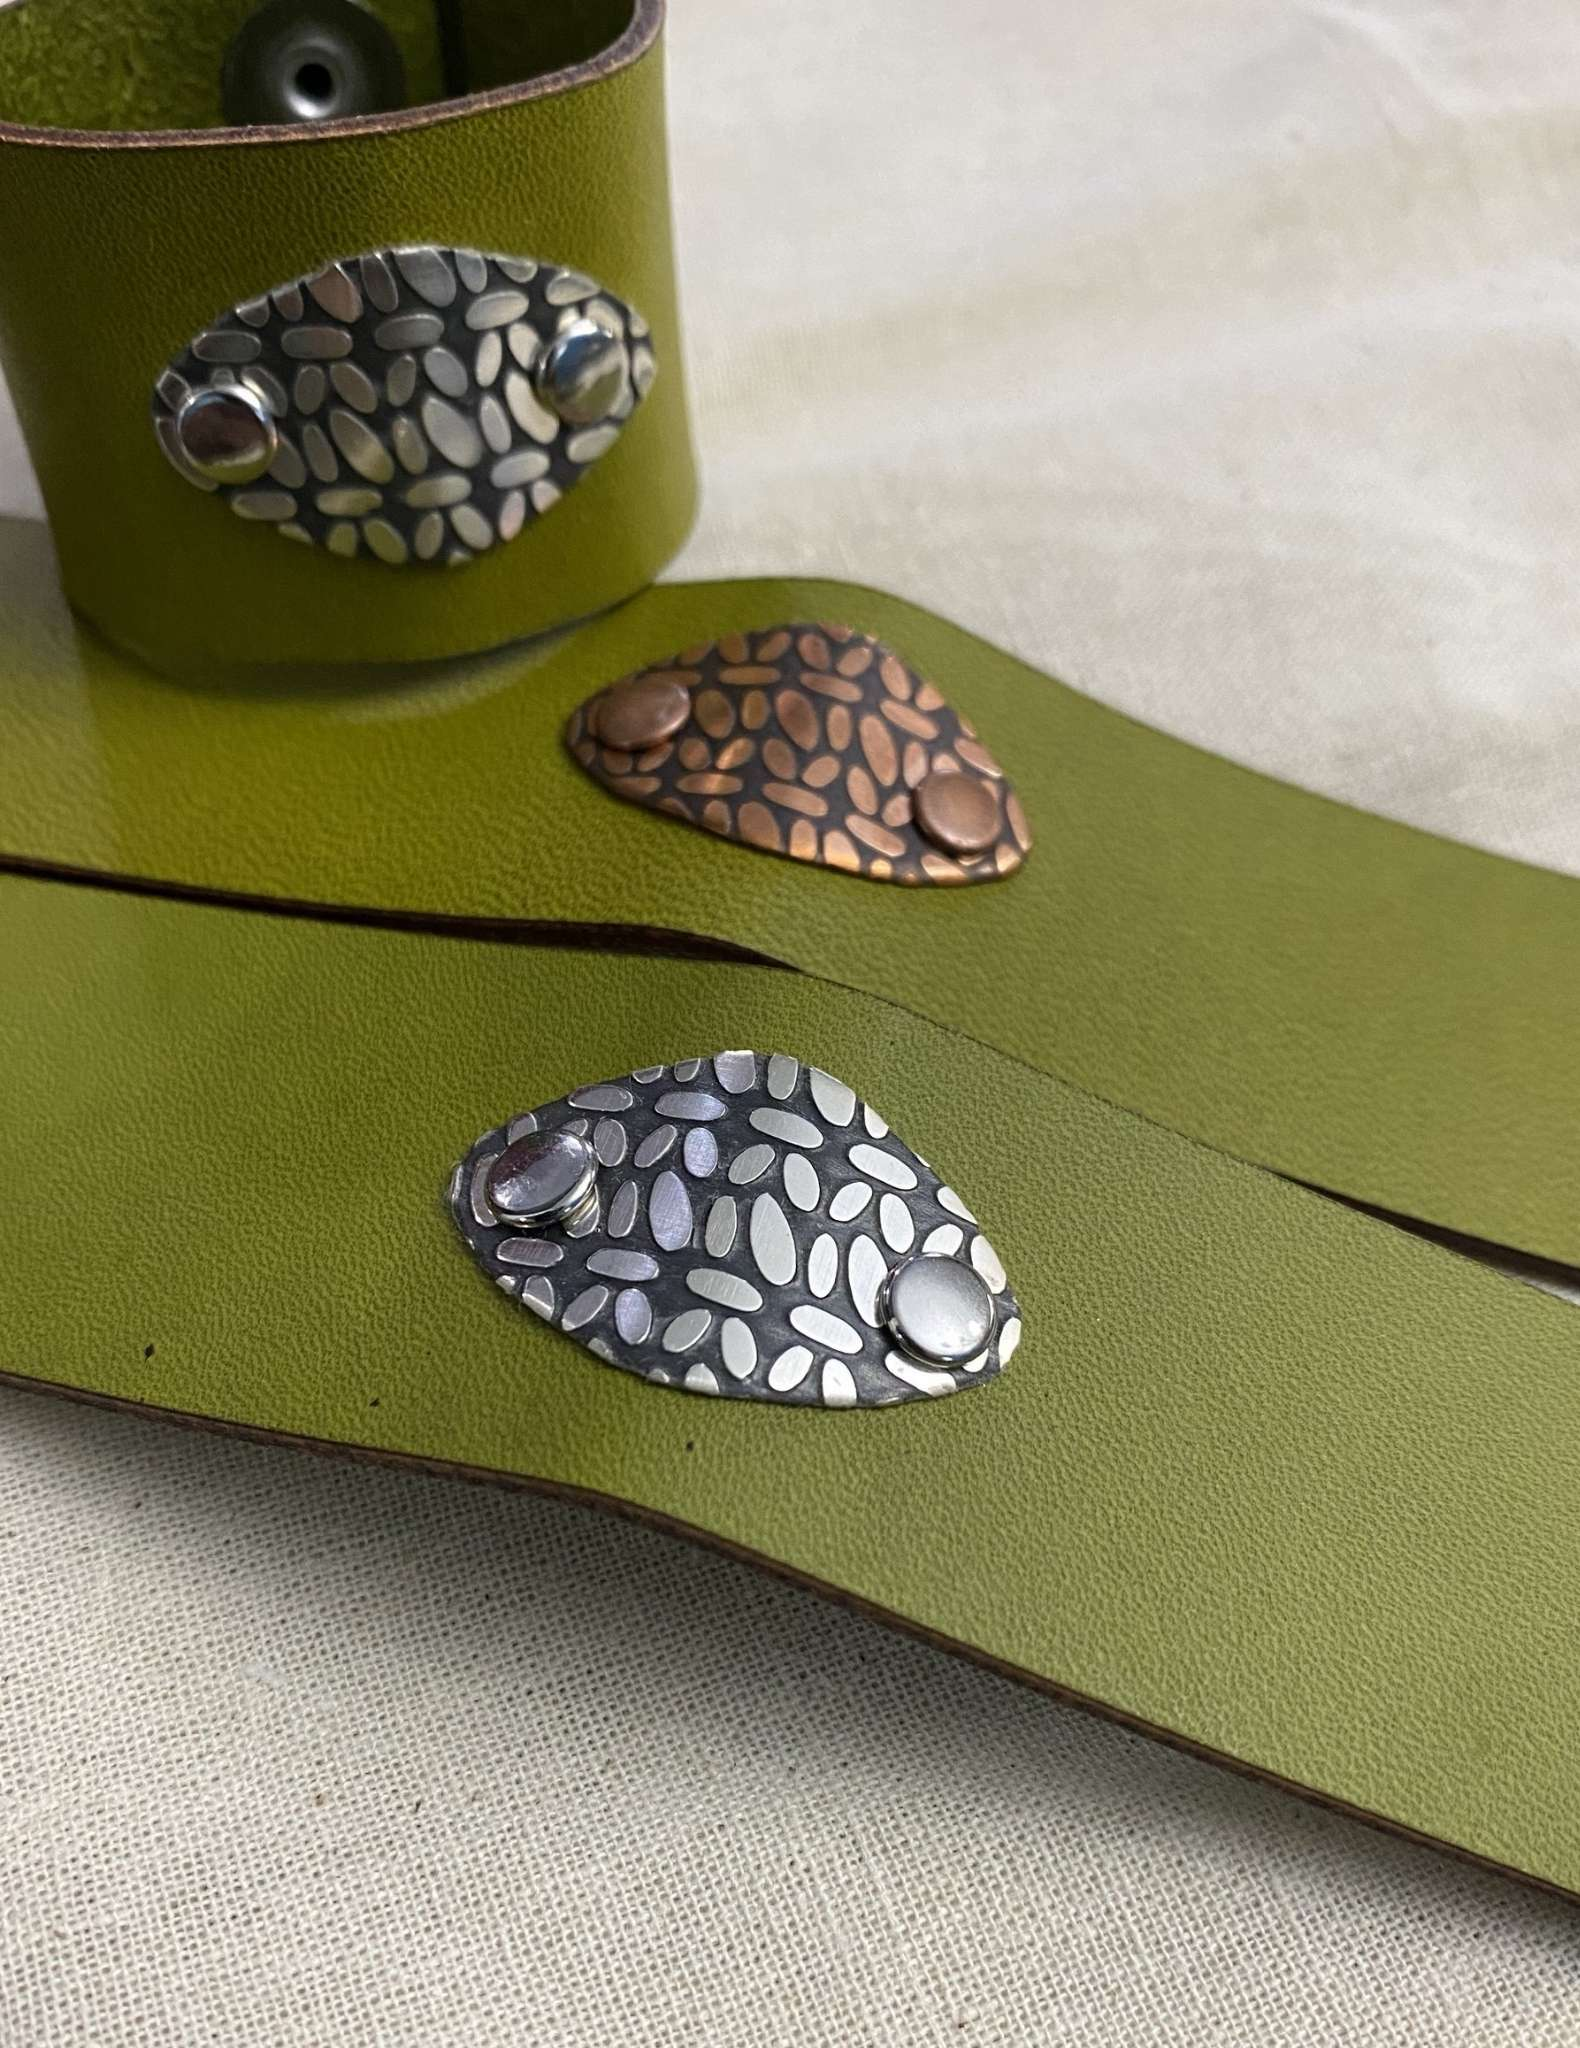 Two green leather cuffs laying flat, and a third curled in a loop sitting on top.